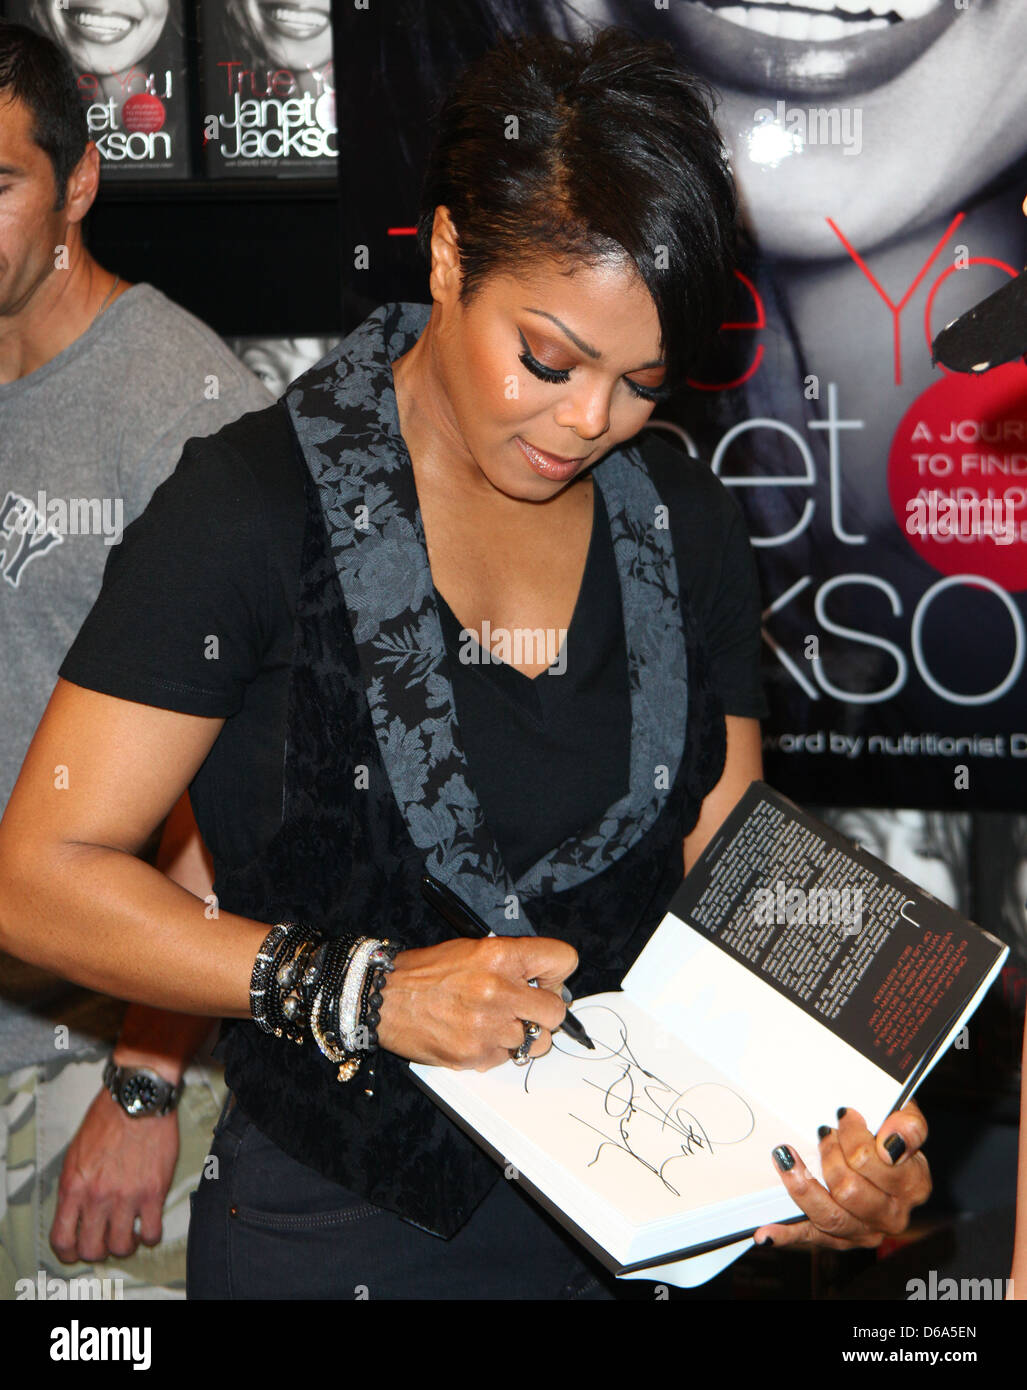 Janet Jackson signs copies of her new book 'True You' Los